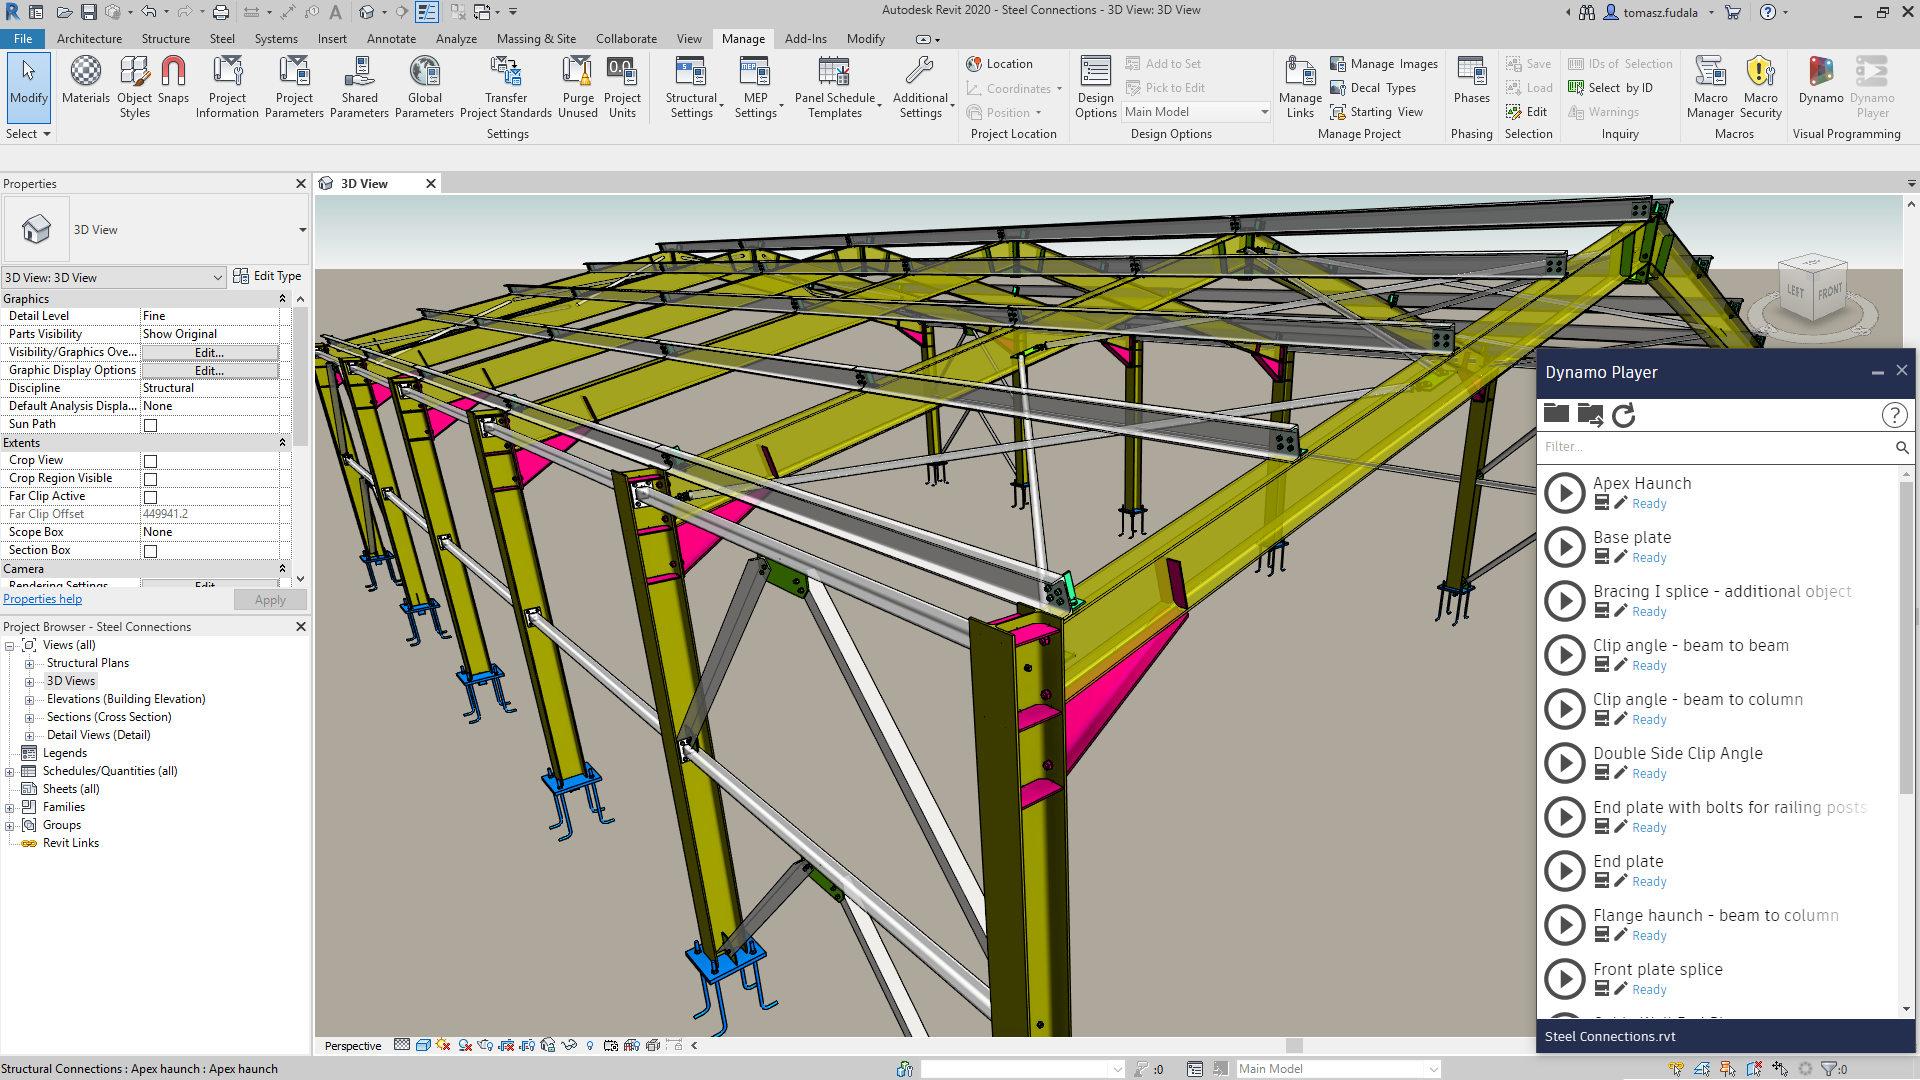 Working with Autodesk Revit 2020 full license